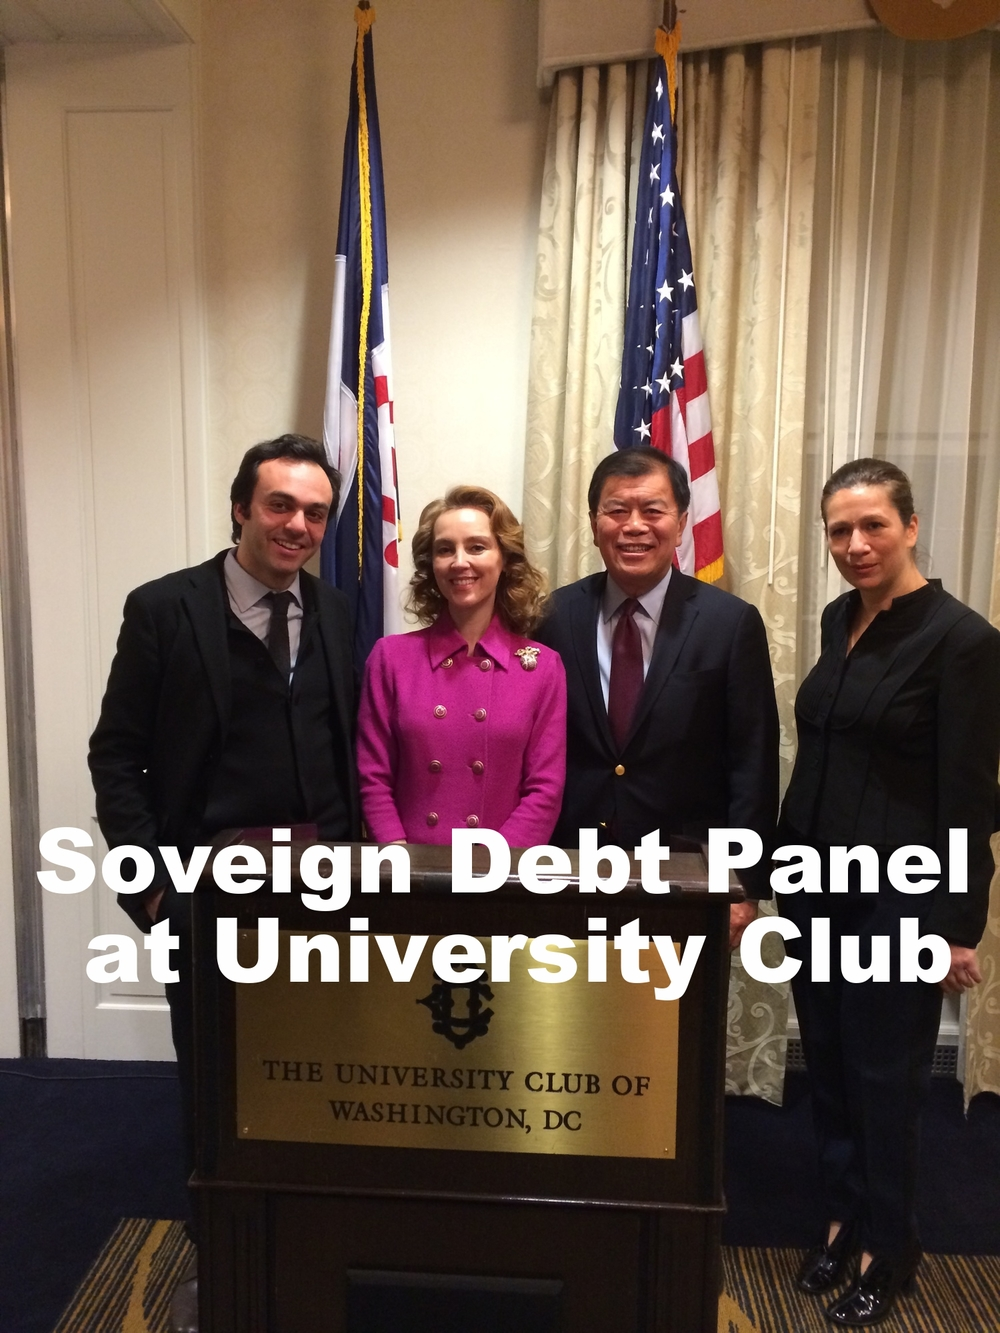 David Wu with the Sovereign Debt Panel at University Club